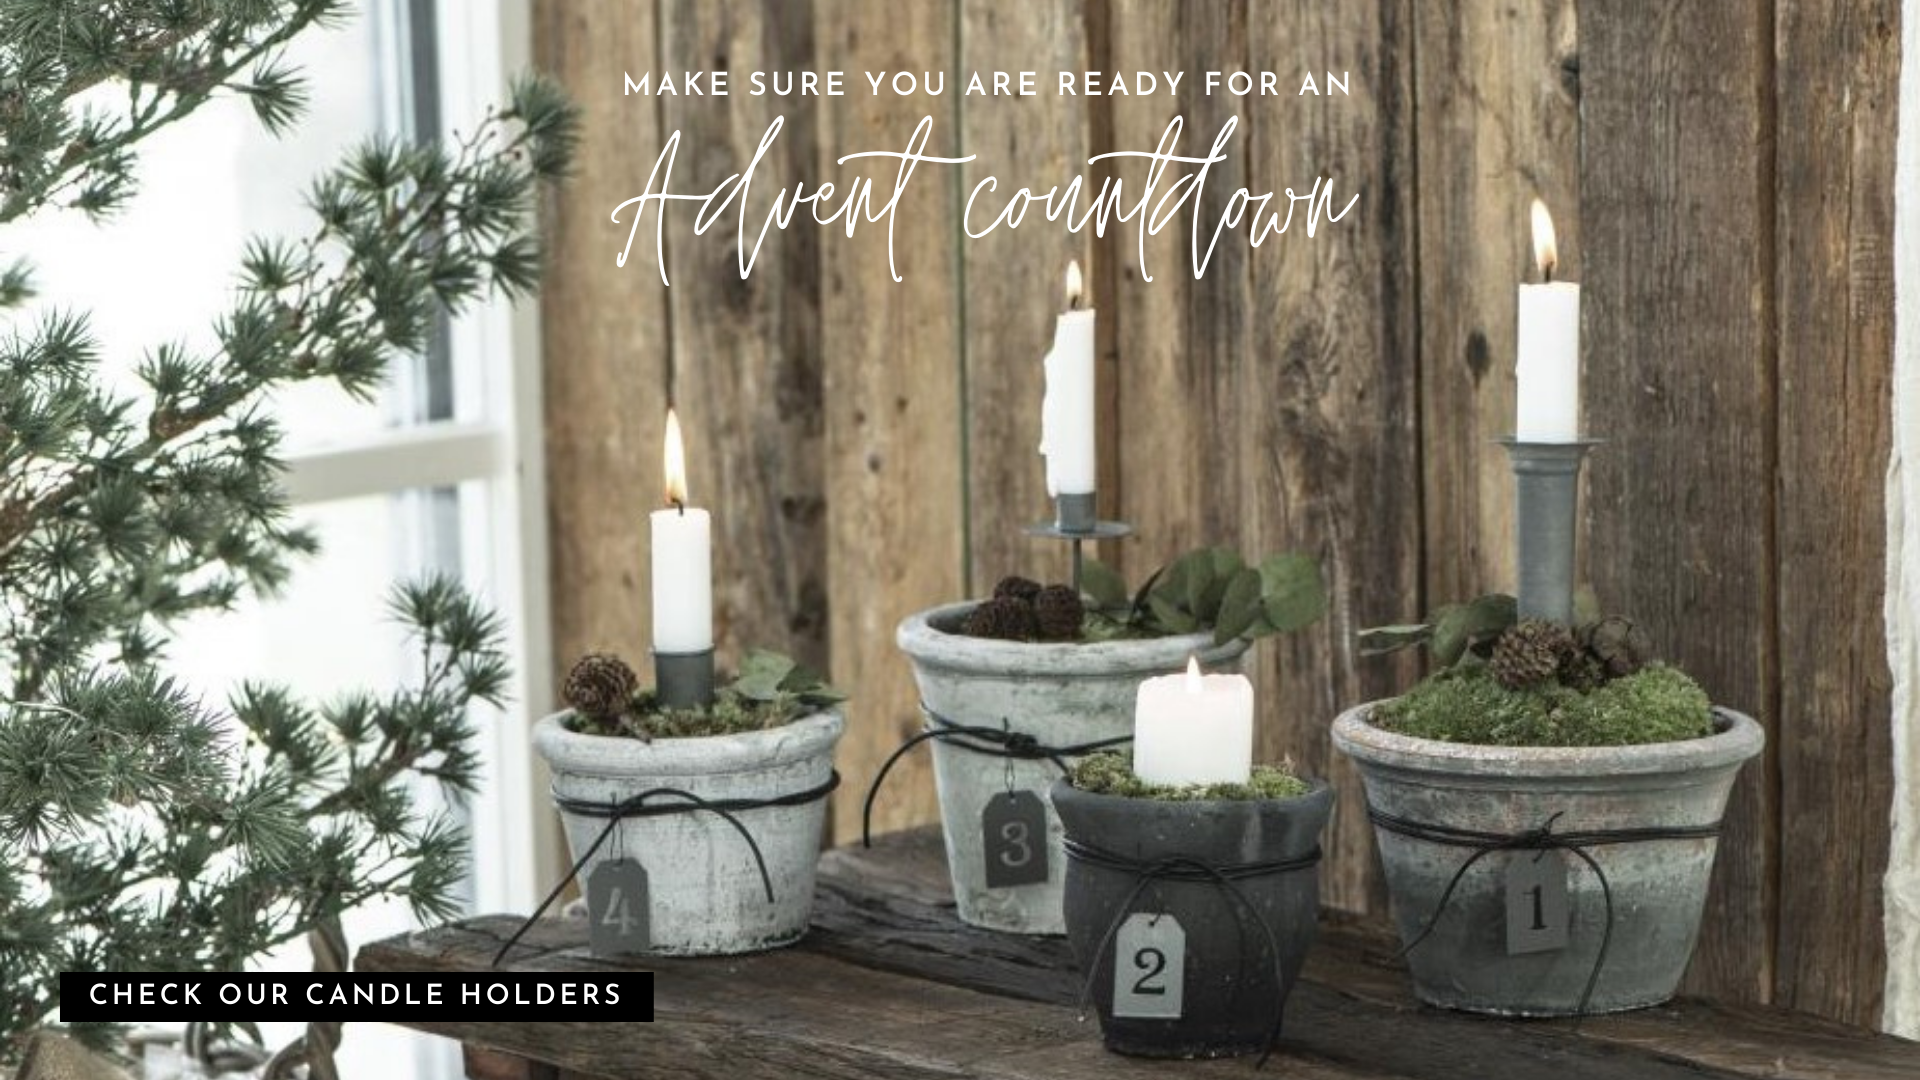 emhomeuk_store_advent_candleholders_decoration_homeware_banner_2020